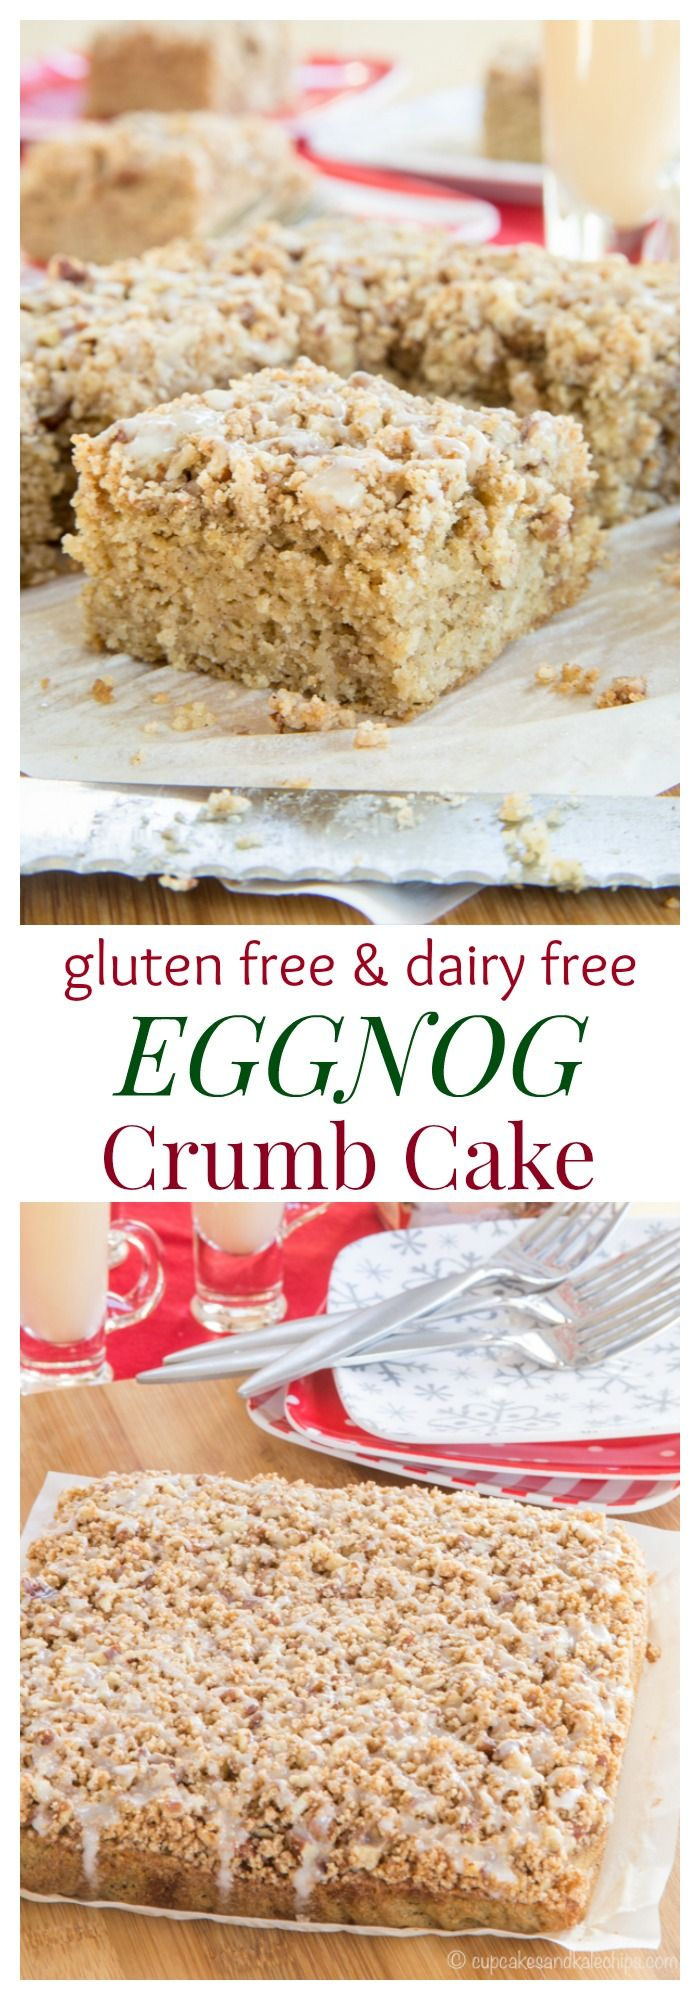 Gluten Free Eggnog Crumb Cake - the aroma of cinnamon and nutmeg will have the family running out of bed for Christmas morning breakfast. Make it dairy free with @LoveMySilk #SilkHolidays #ad | cupcakesandkalechips.com